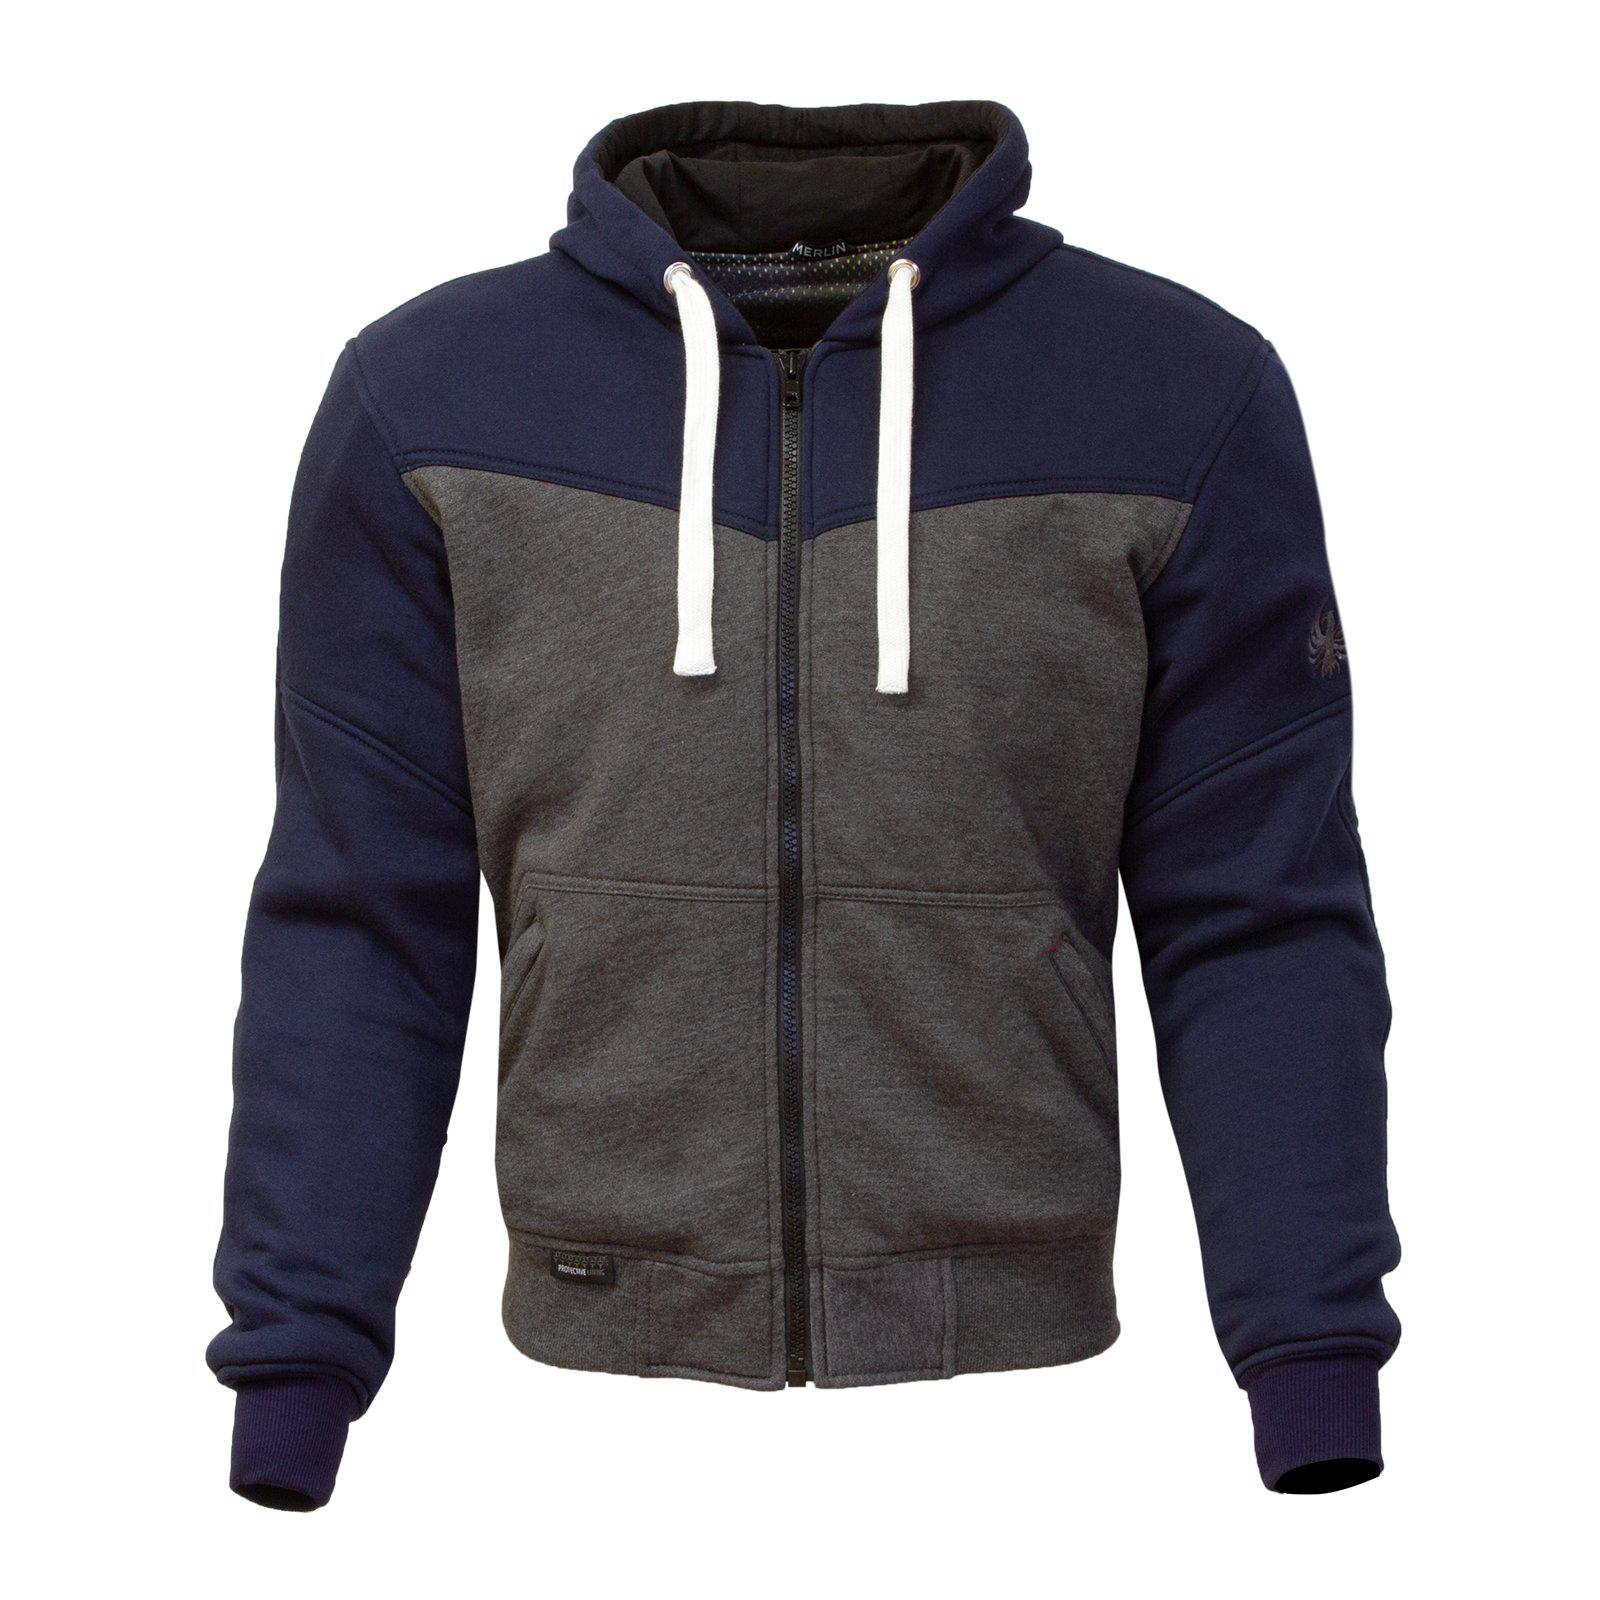 Hurley Hoody-Protective Hoody-Merlin-Navy/Grey-Small-Merlin Bike Gear